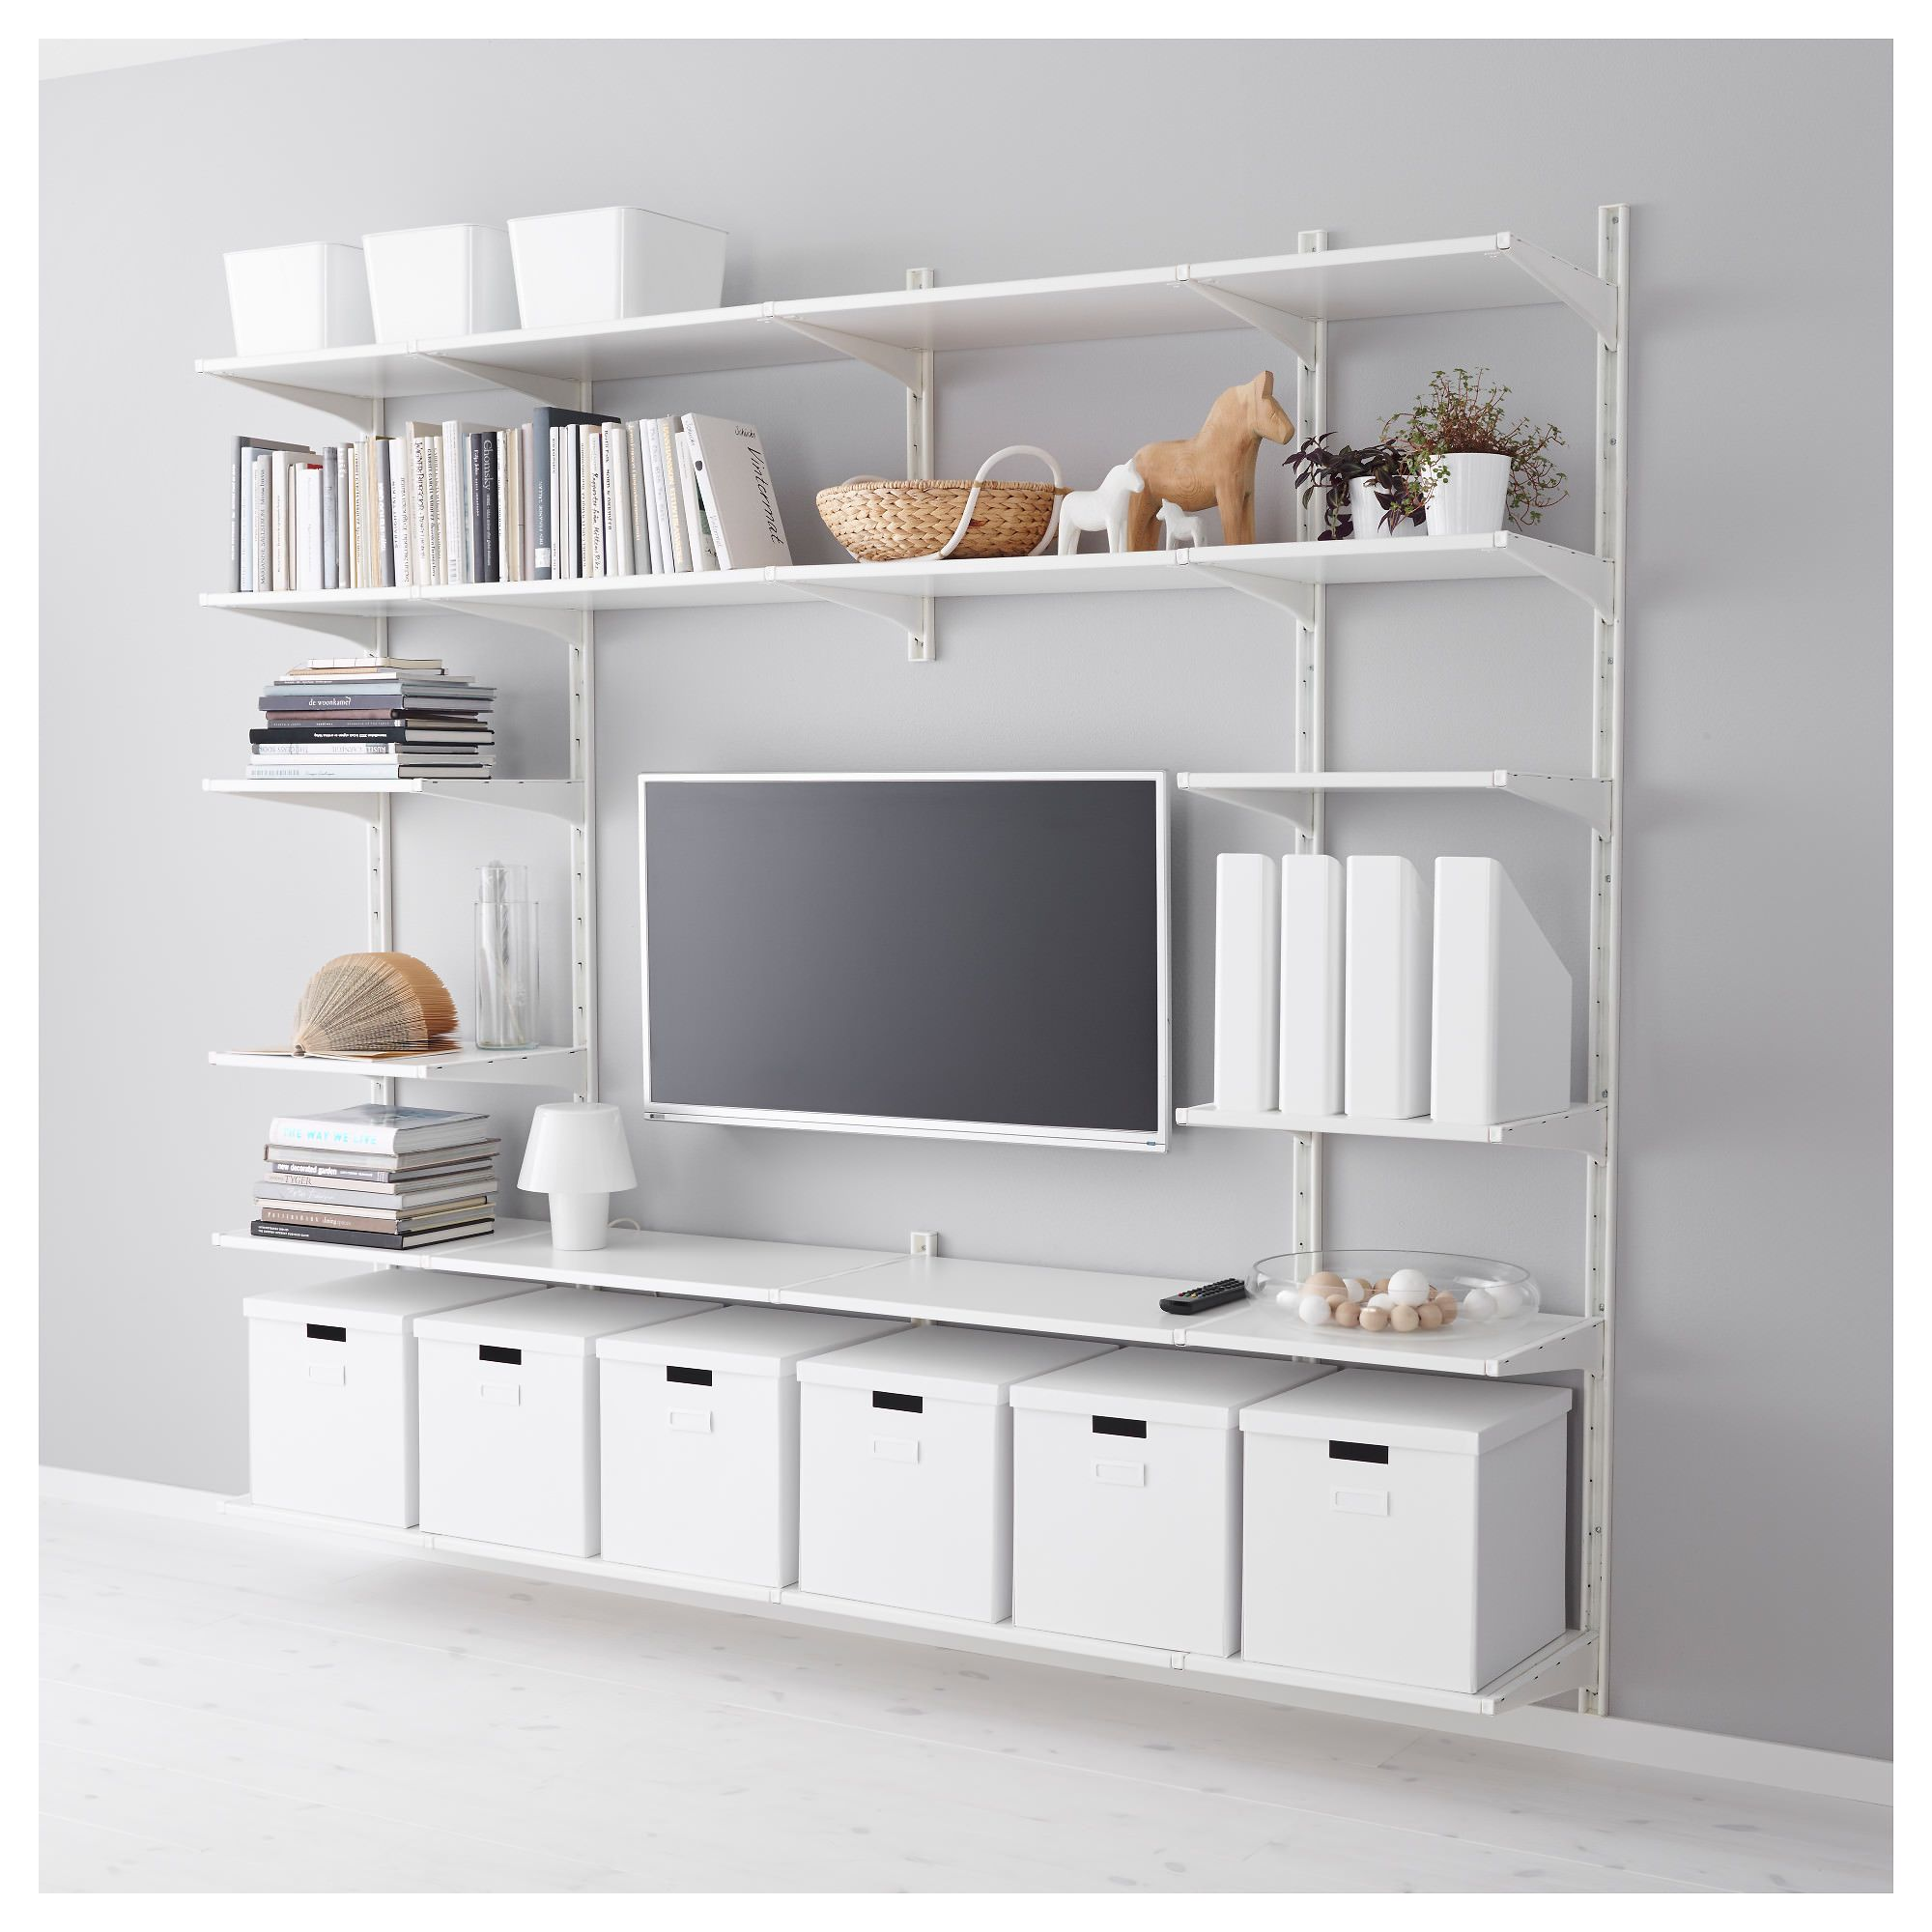 Shop For Closet Systems At Ikea Our Algot System Is